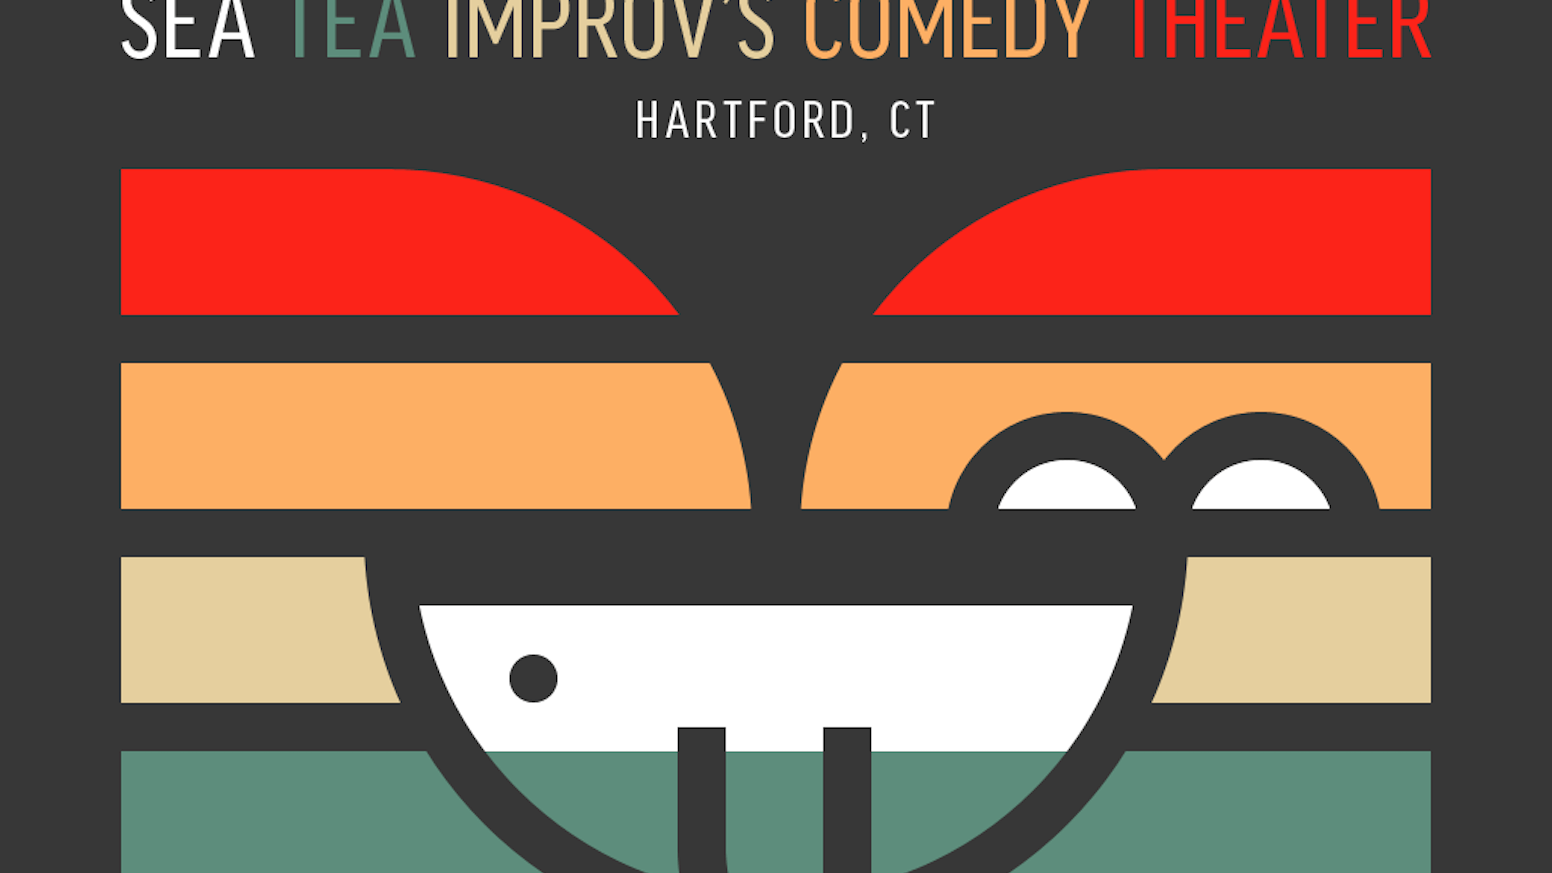 A permanent home for comedy in Connecticut in the heart of downtown Hartford.